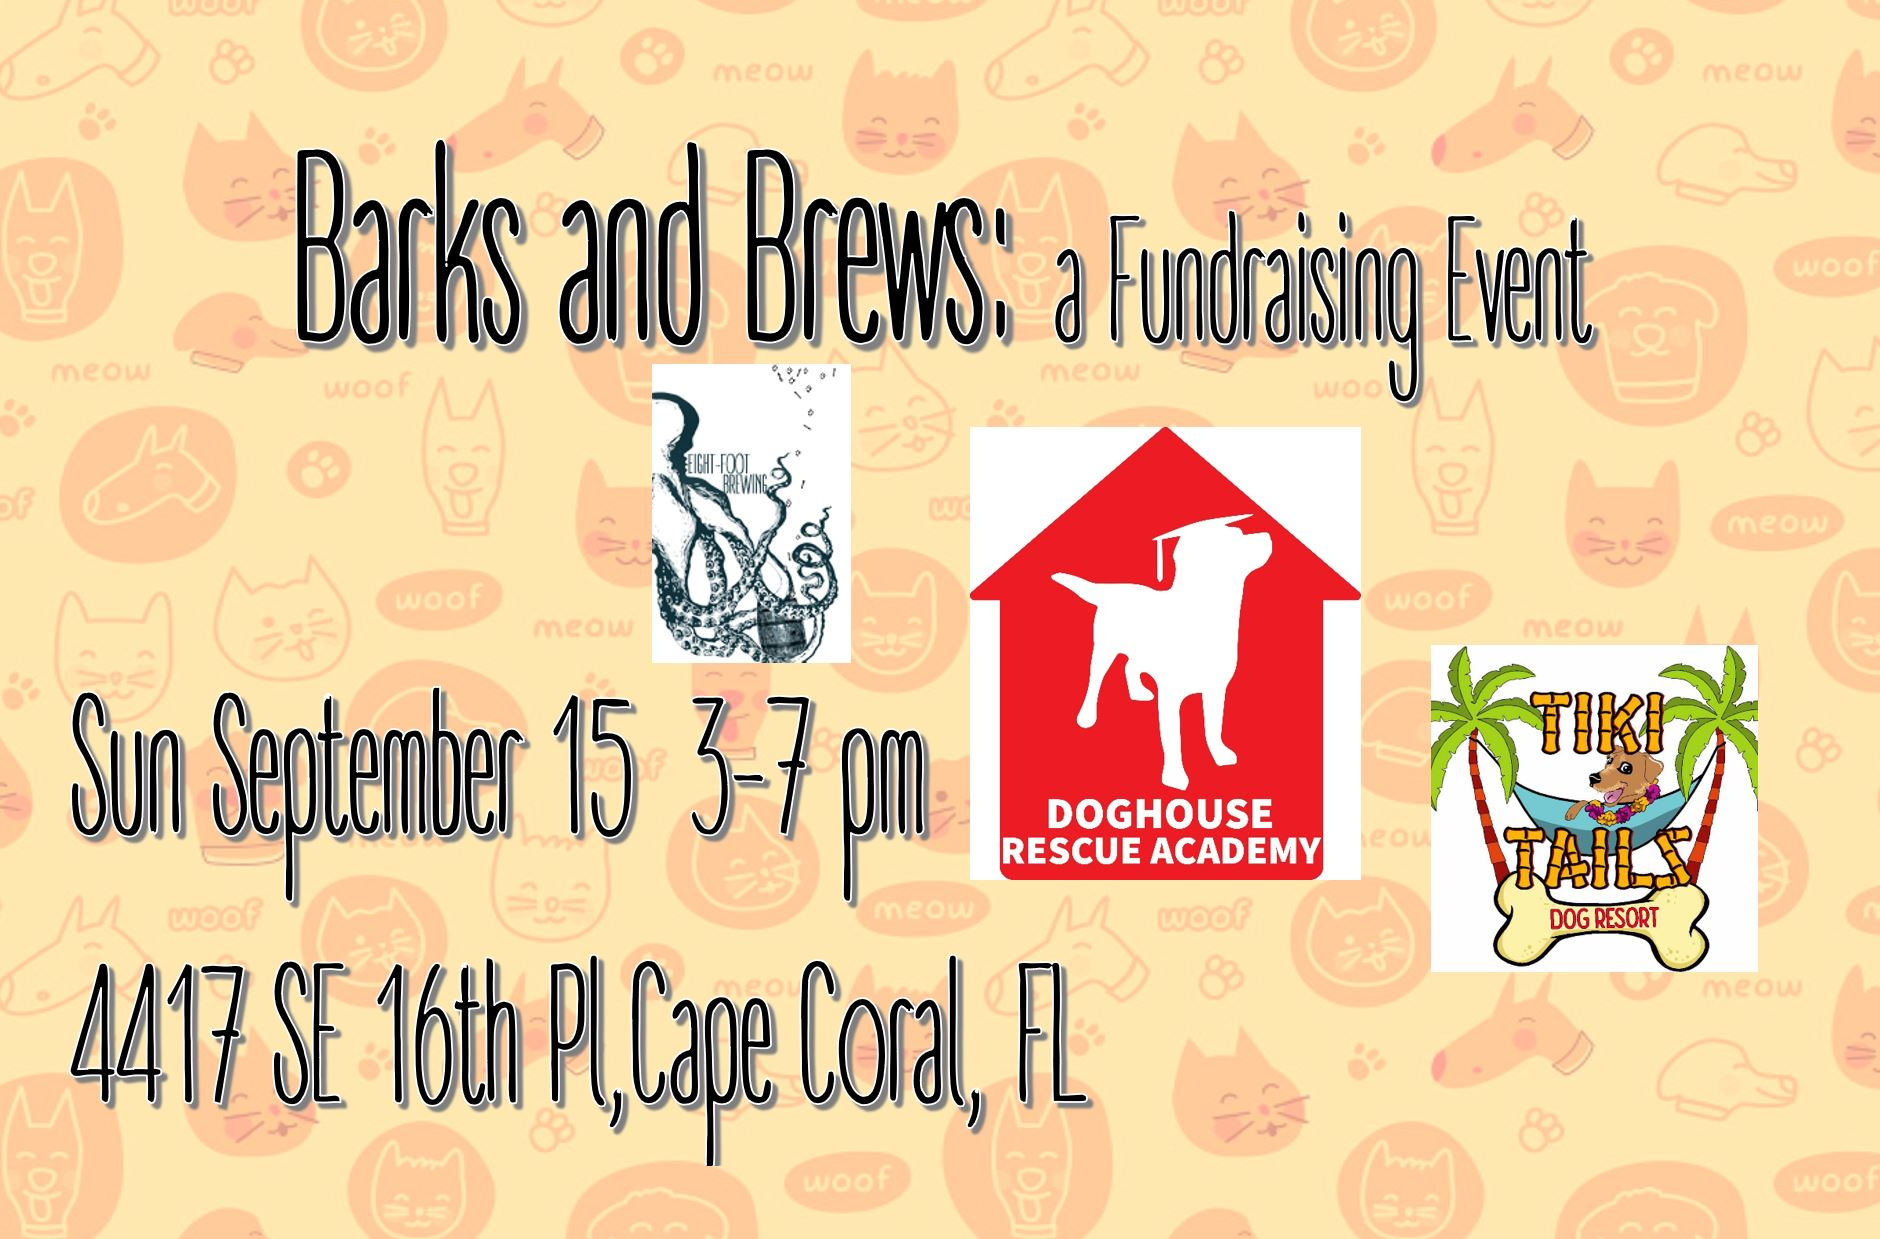 5 Things To Do This Weekend in Cape Coral (Sept 13 - 15)